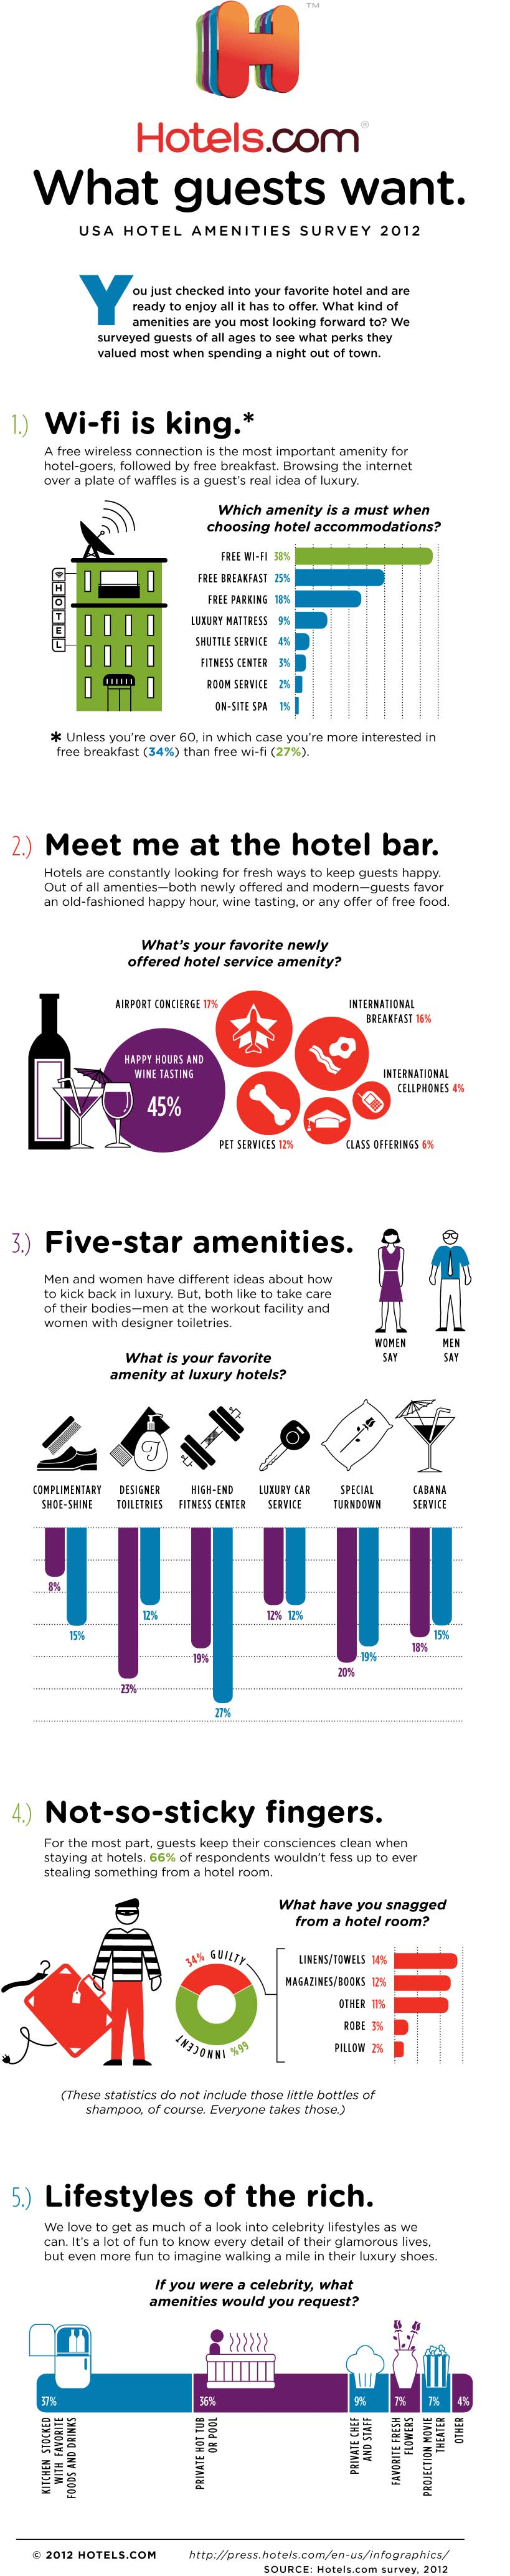 USA Hotel Amenities Survey - What Do Guests Want?